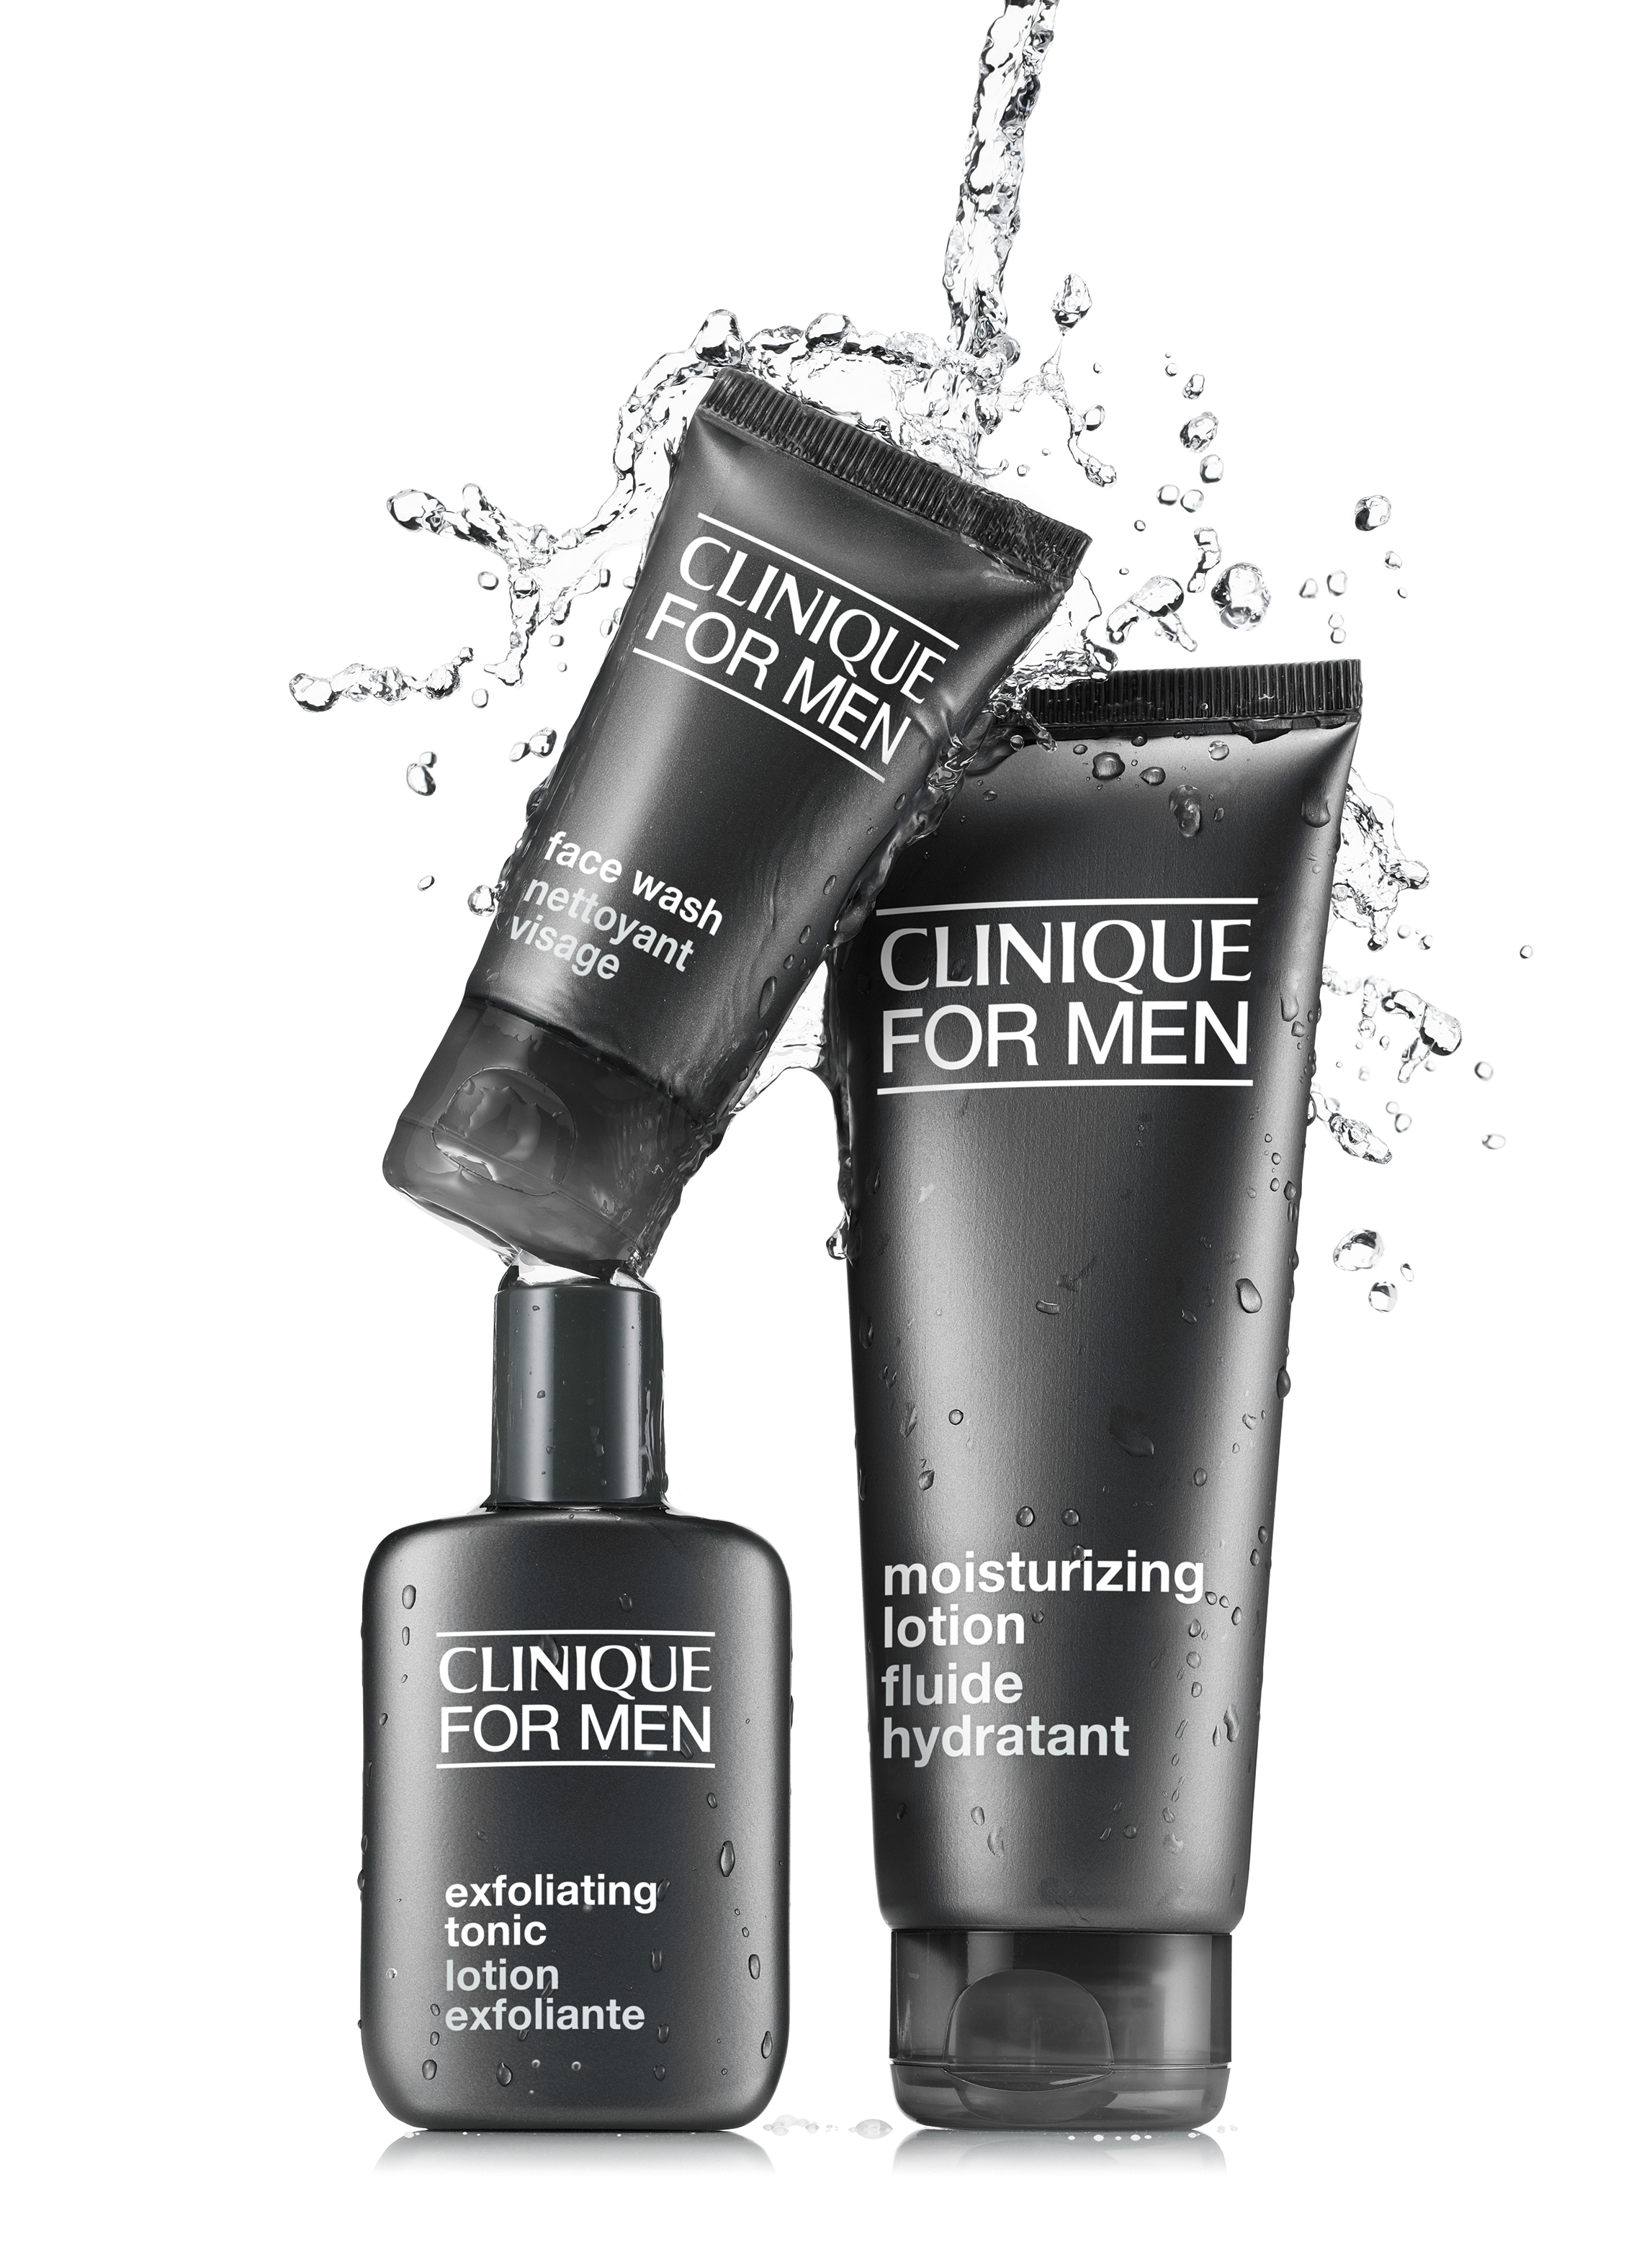 CLINIQUE FOR MEN, Great Skin for Him, Int